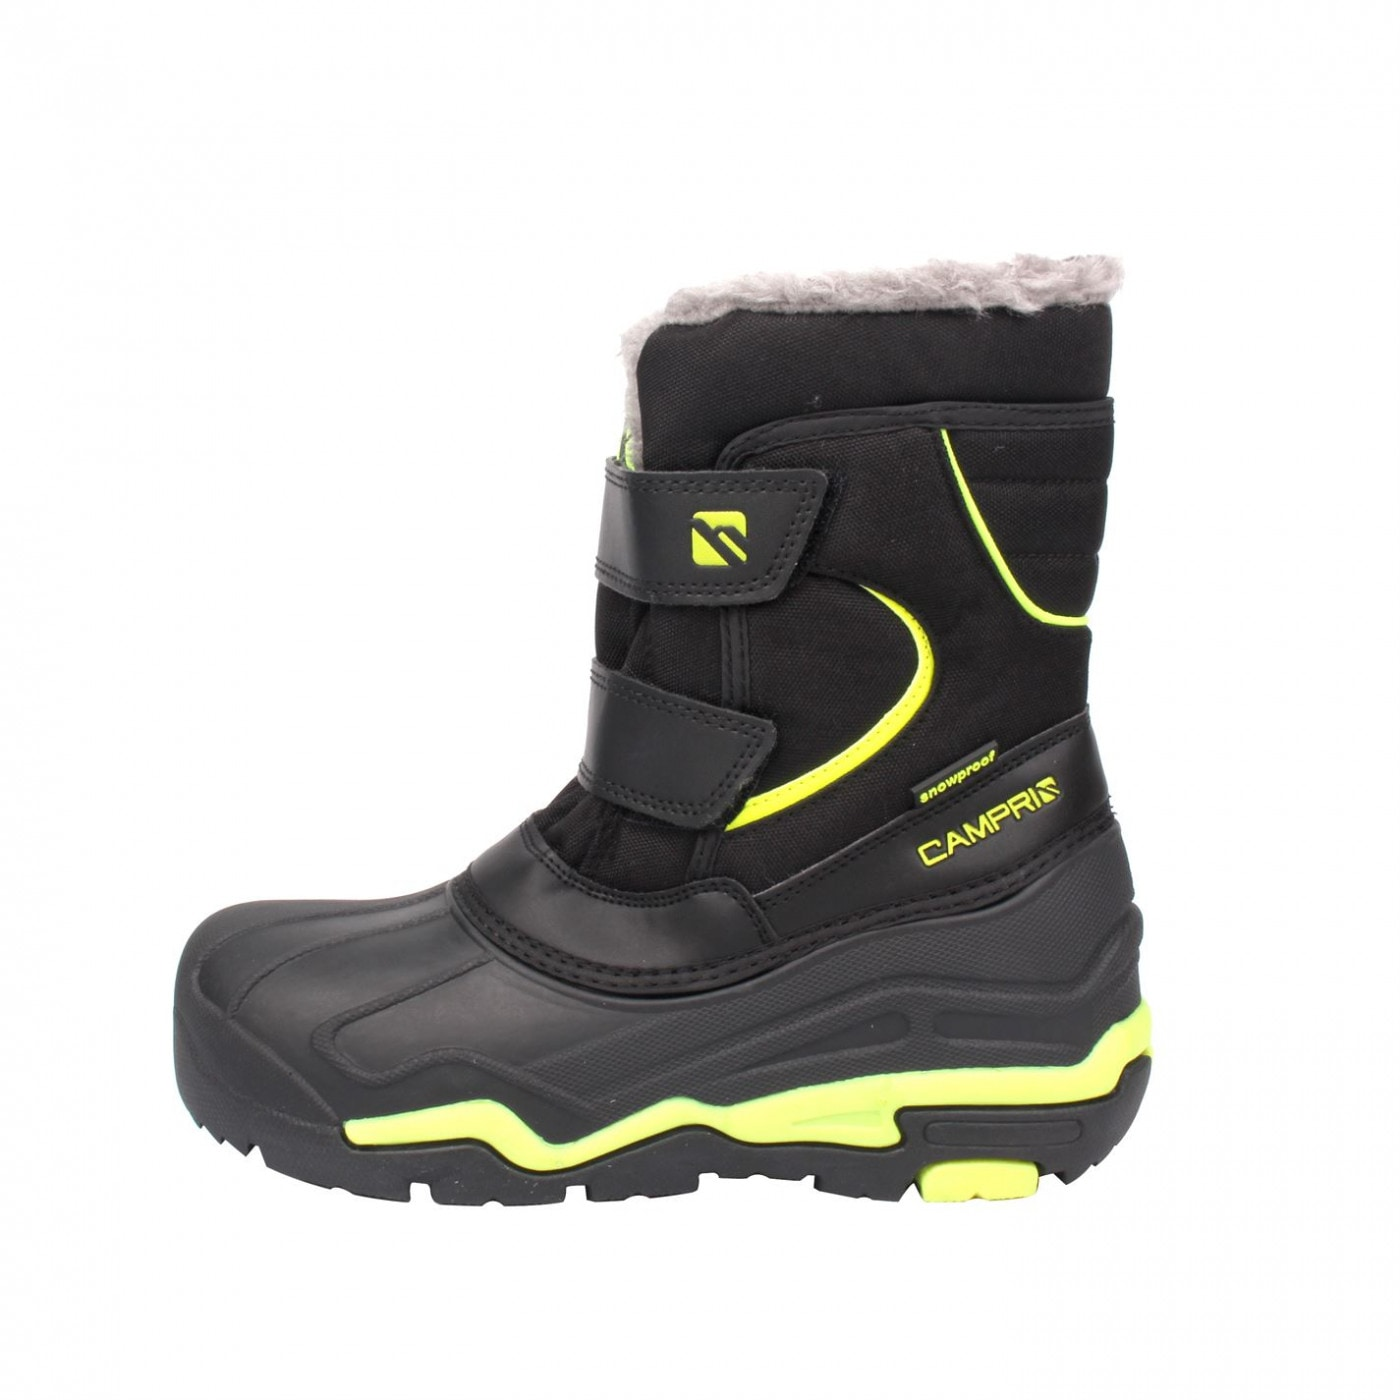 Campri Junior Snow Boots